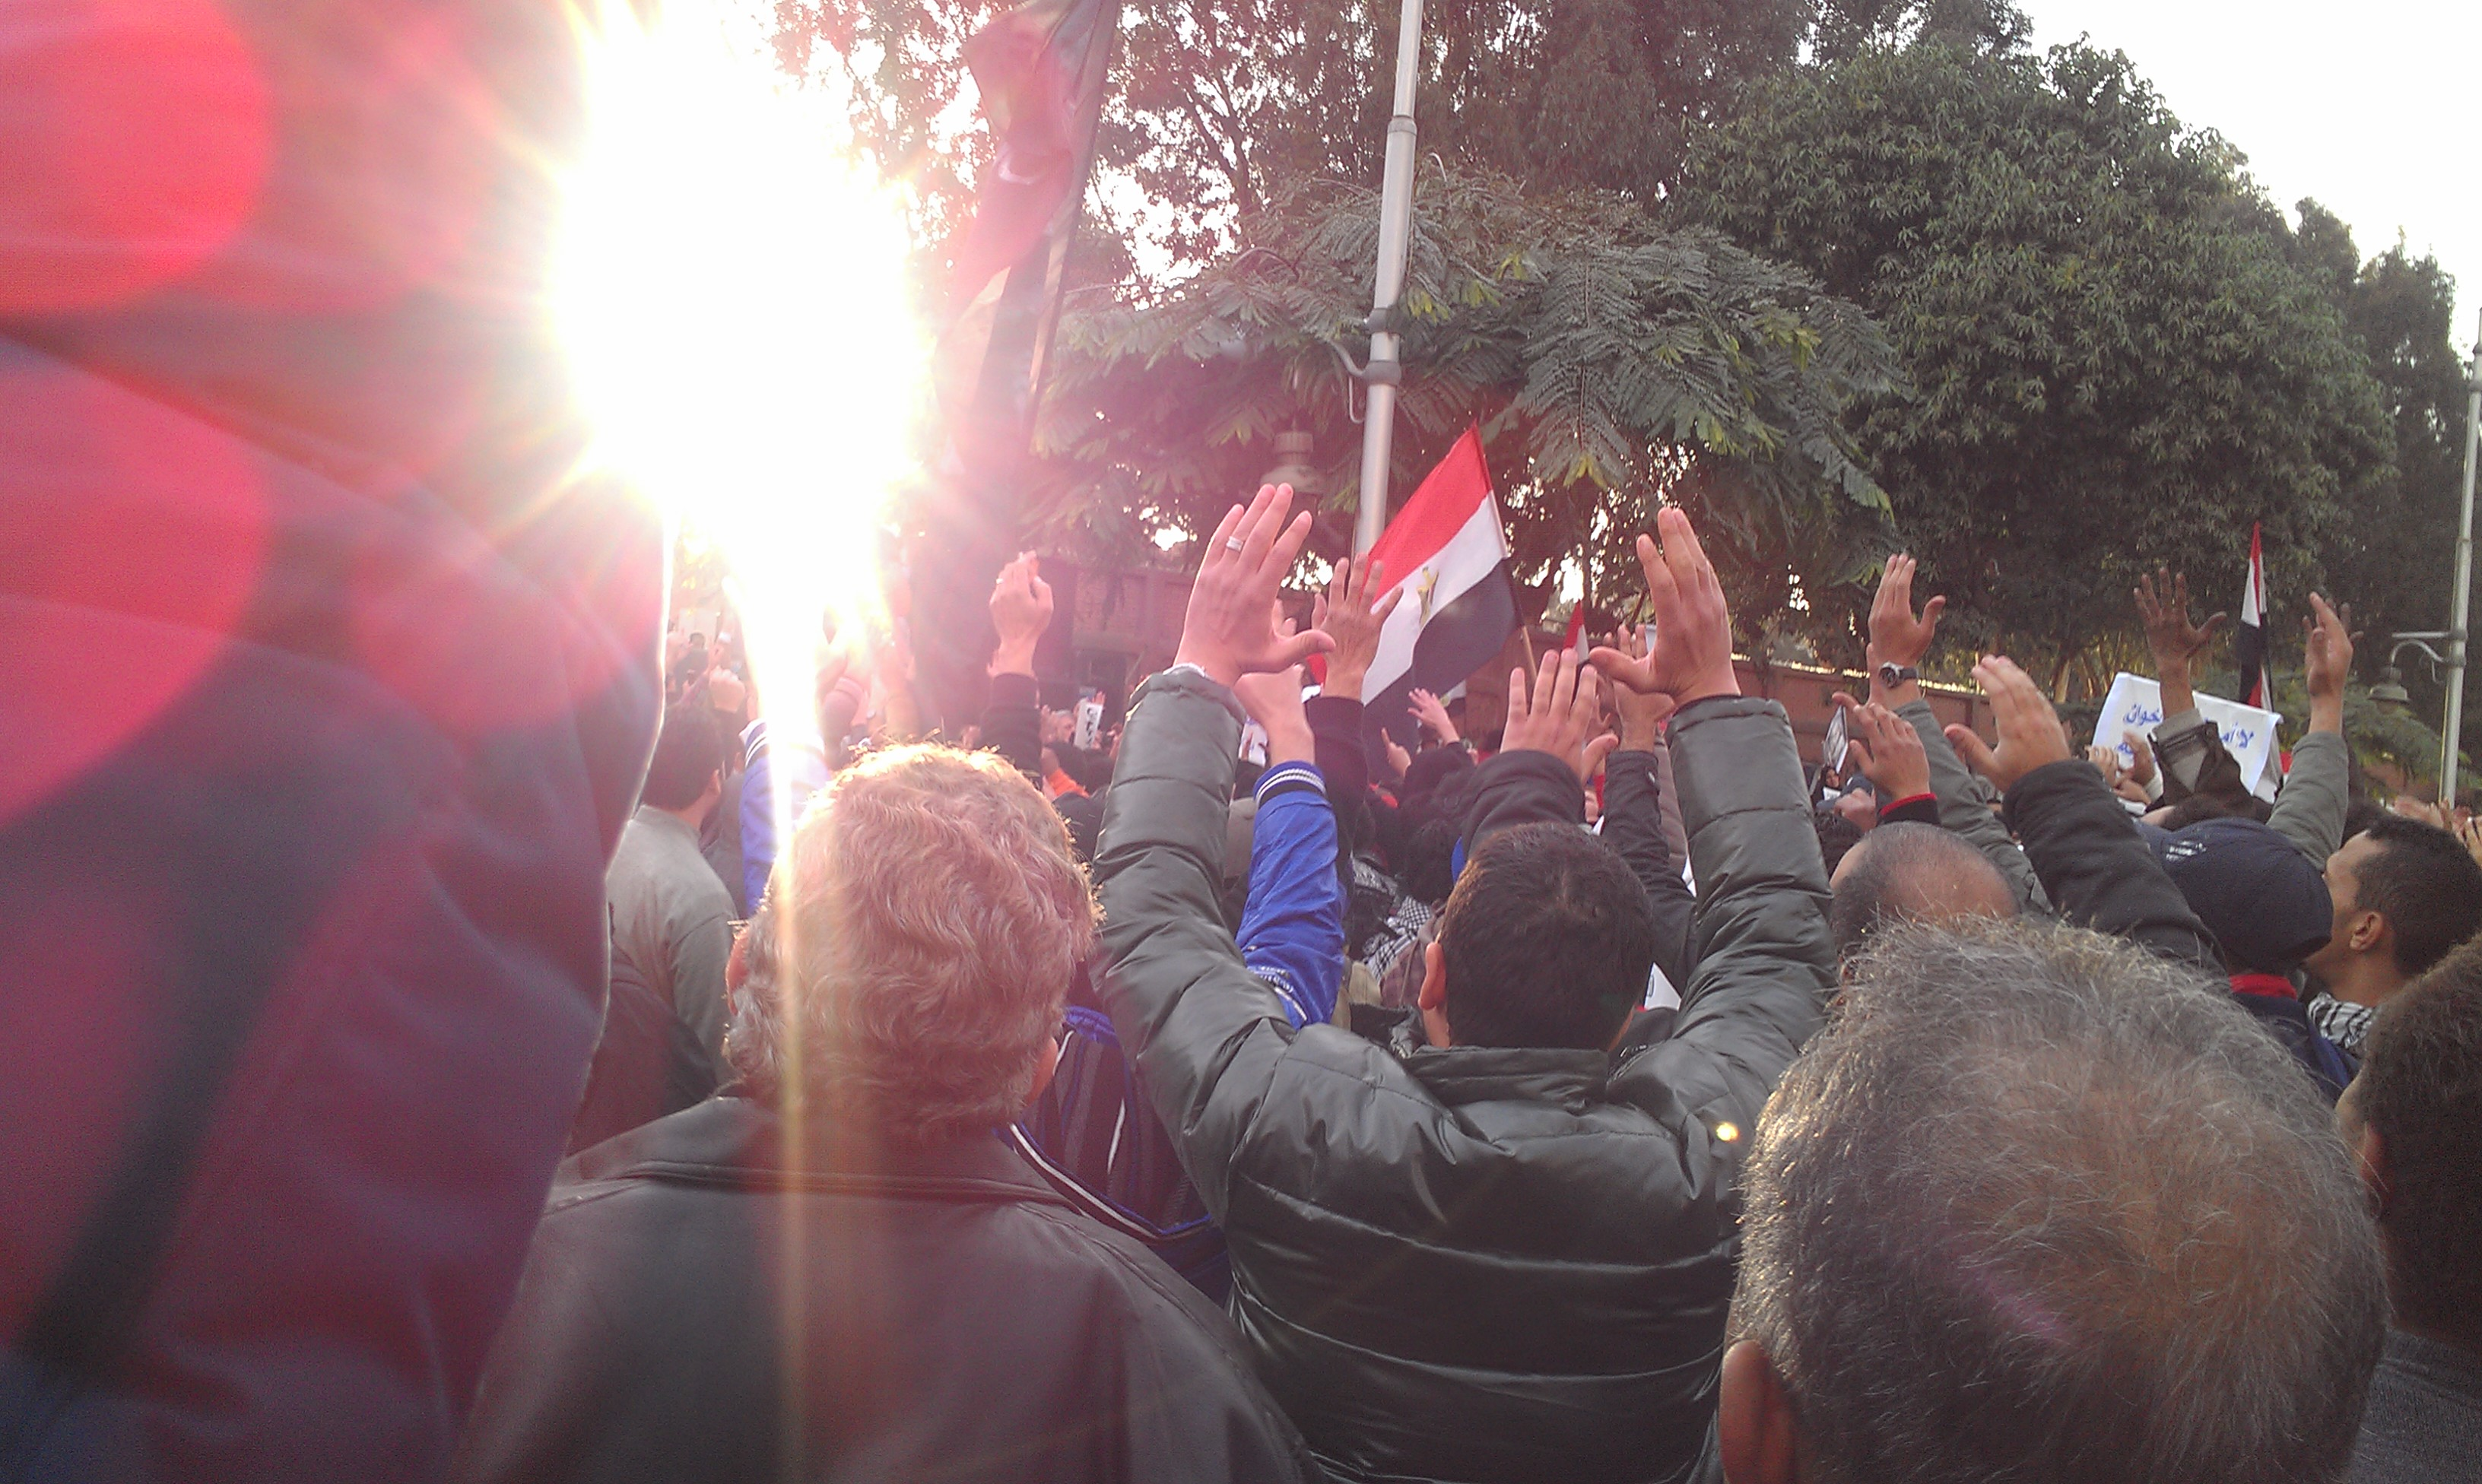 Before the clashes: many gathered outside the Presidential Palace calling for the ouster of Morsi.